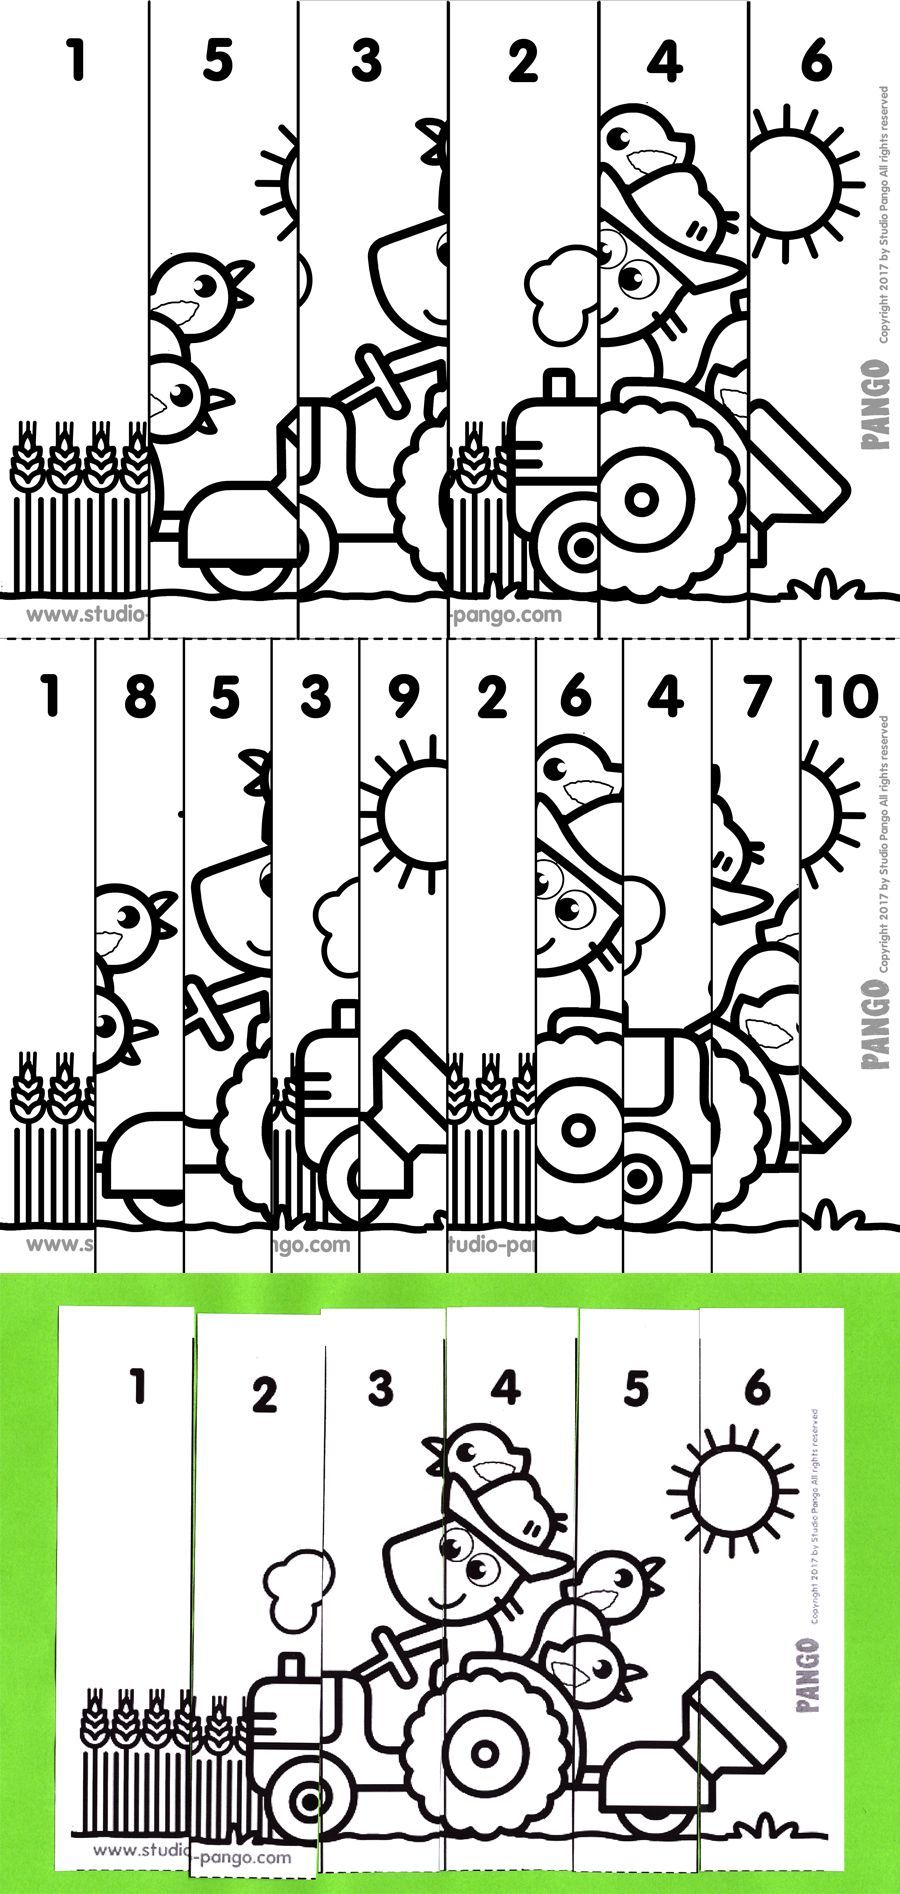 Tractor numerical puzzle #count to 6 #to 10 #maternelle ...